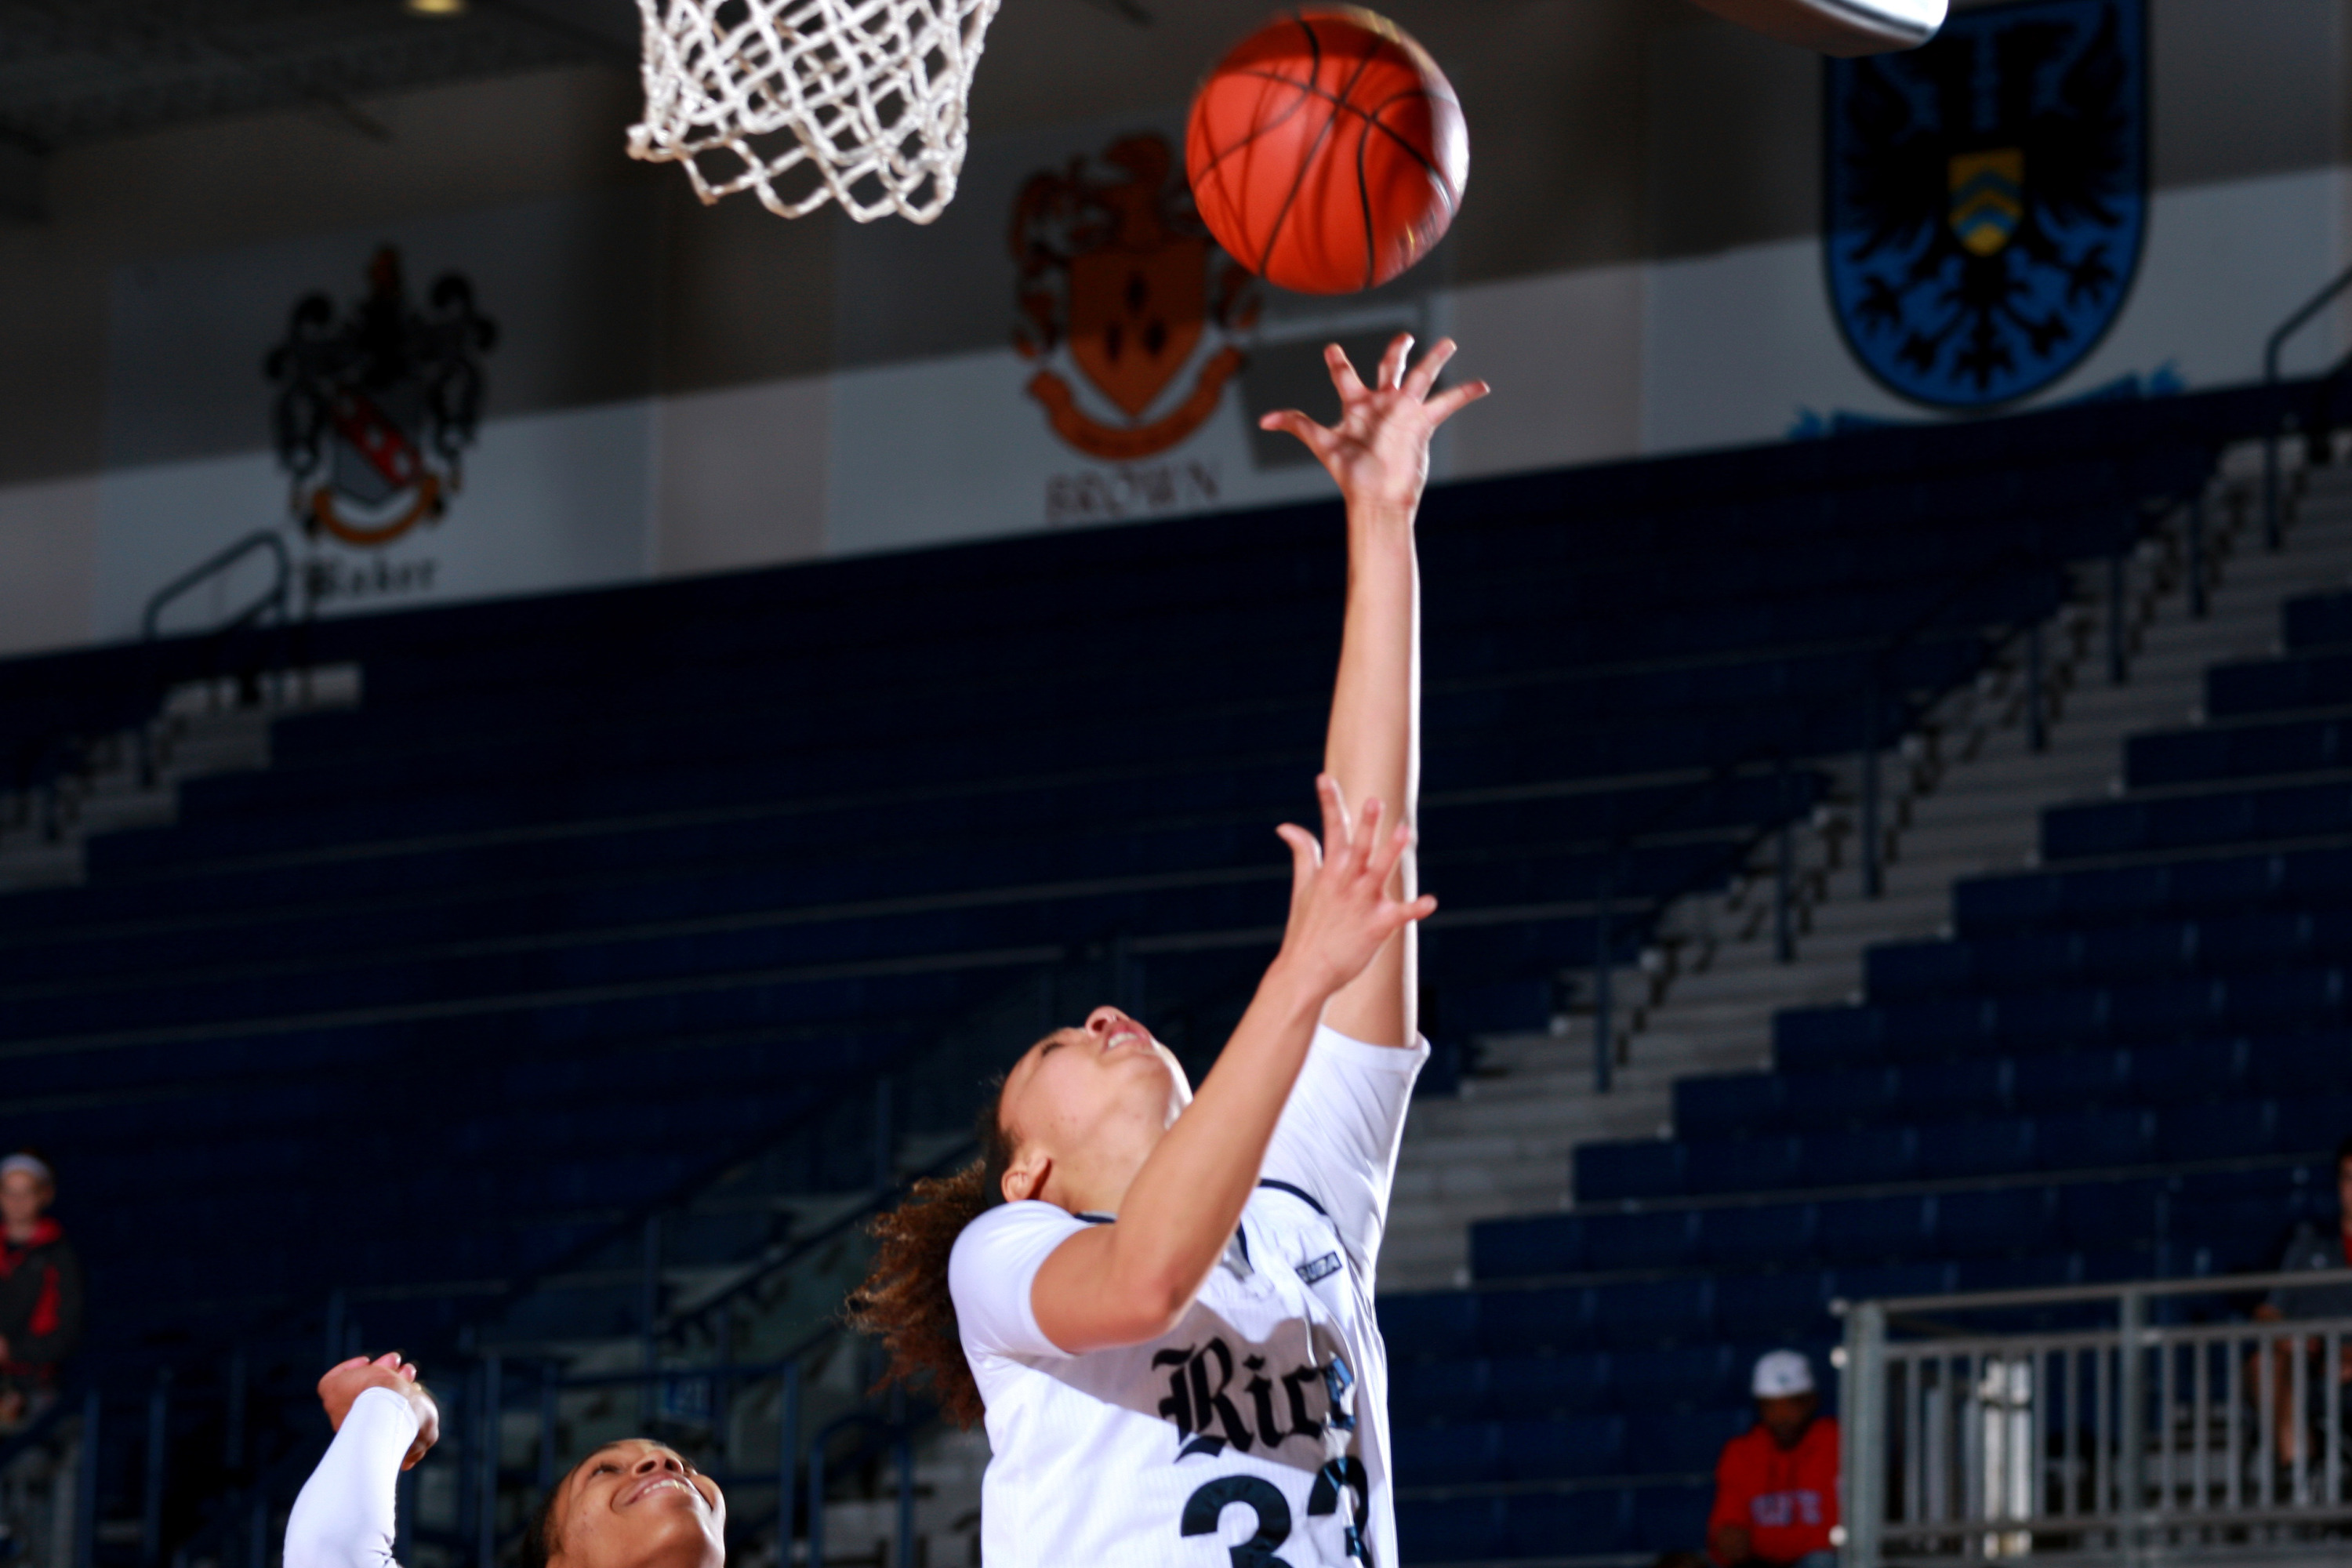 Jasmine Goodwine scored 8 points off the bench in the Owls 53-47 loss at ECU.